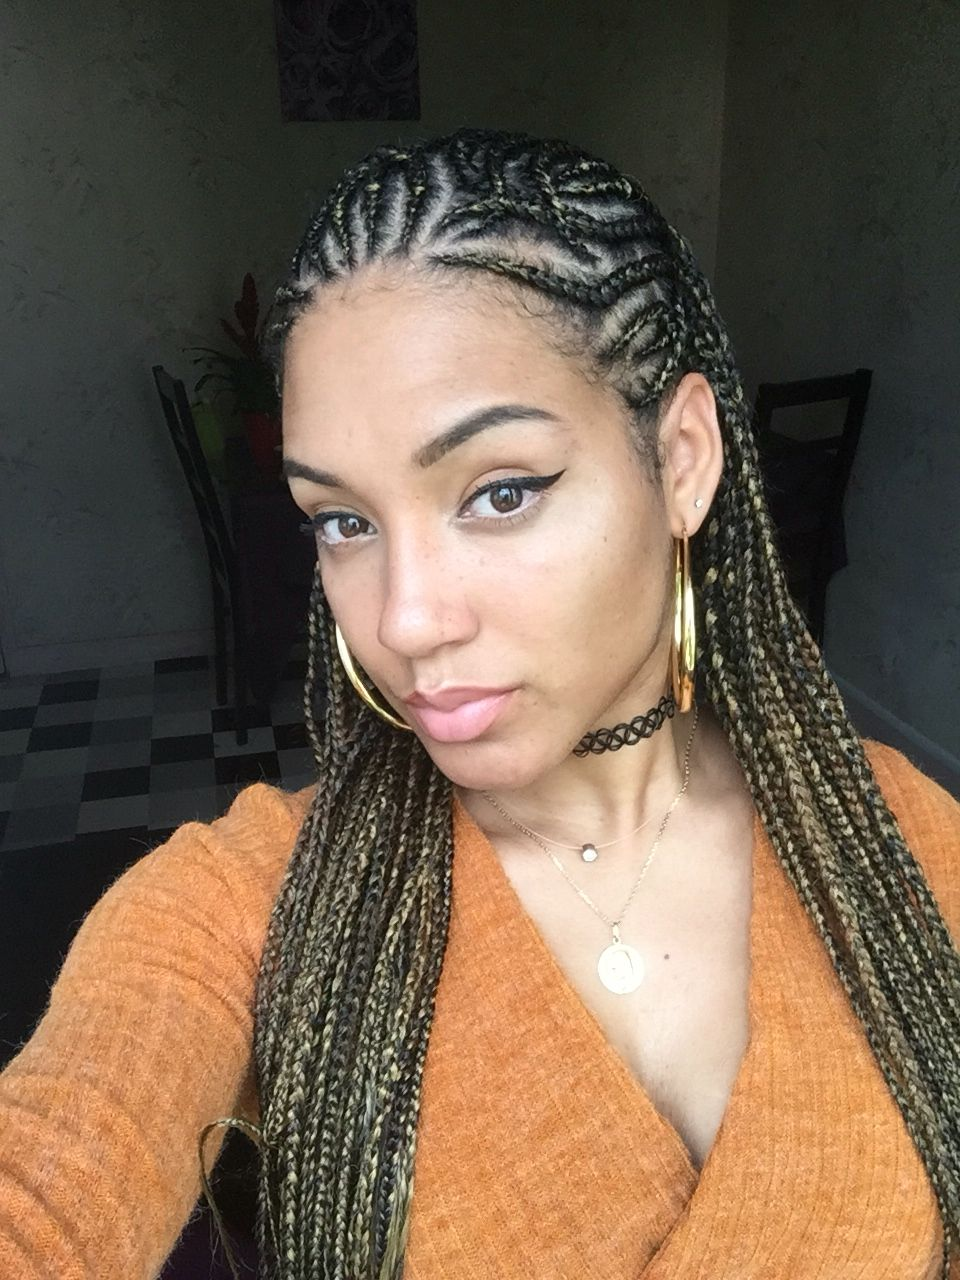 Alicia Keys Inspired Look Cornrows Braids Hair Styles Hair Braid Styles